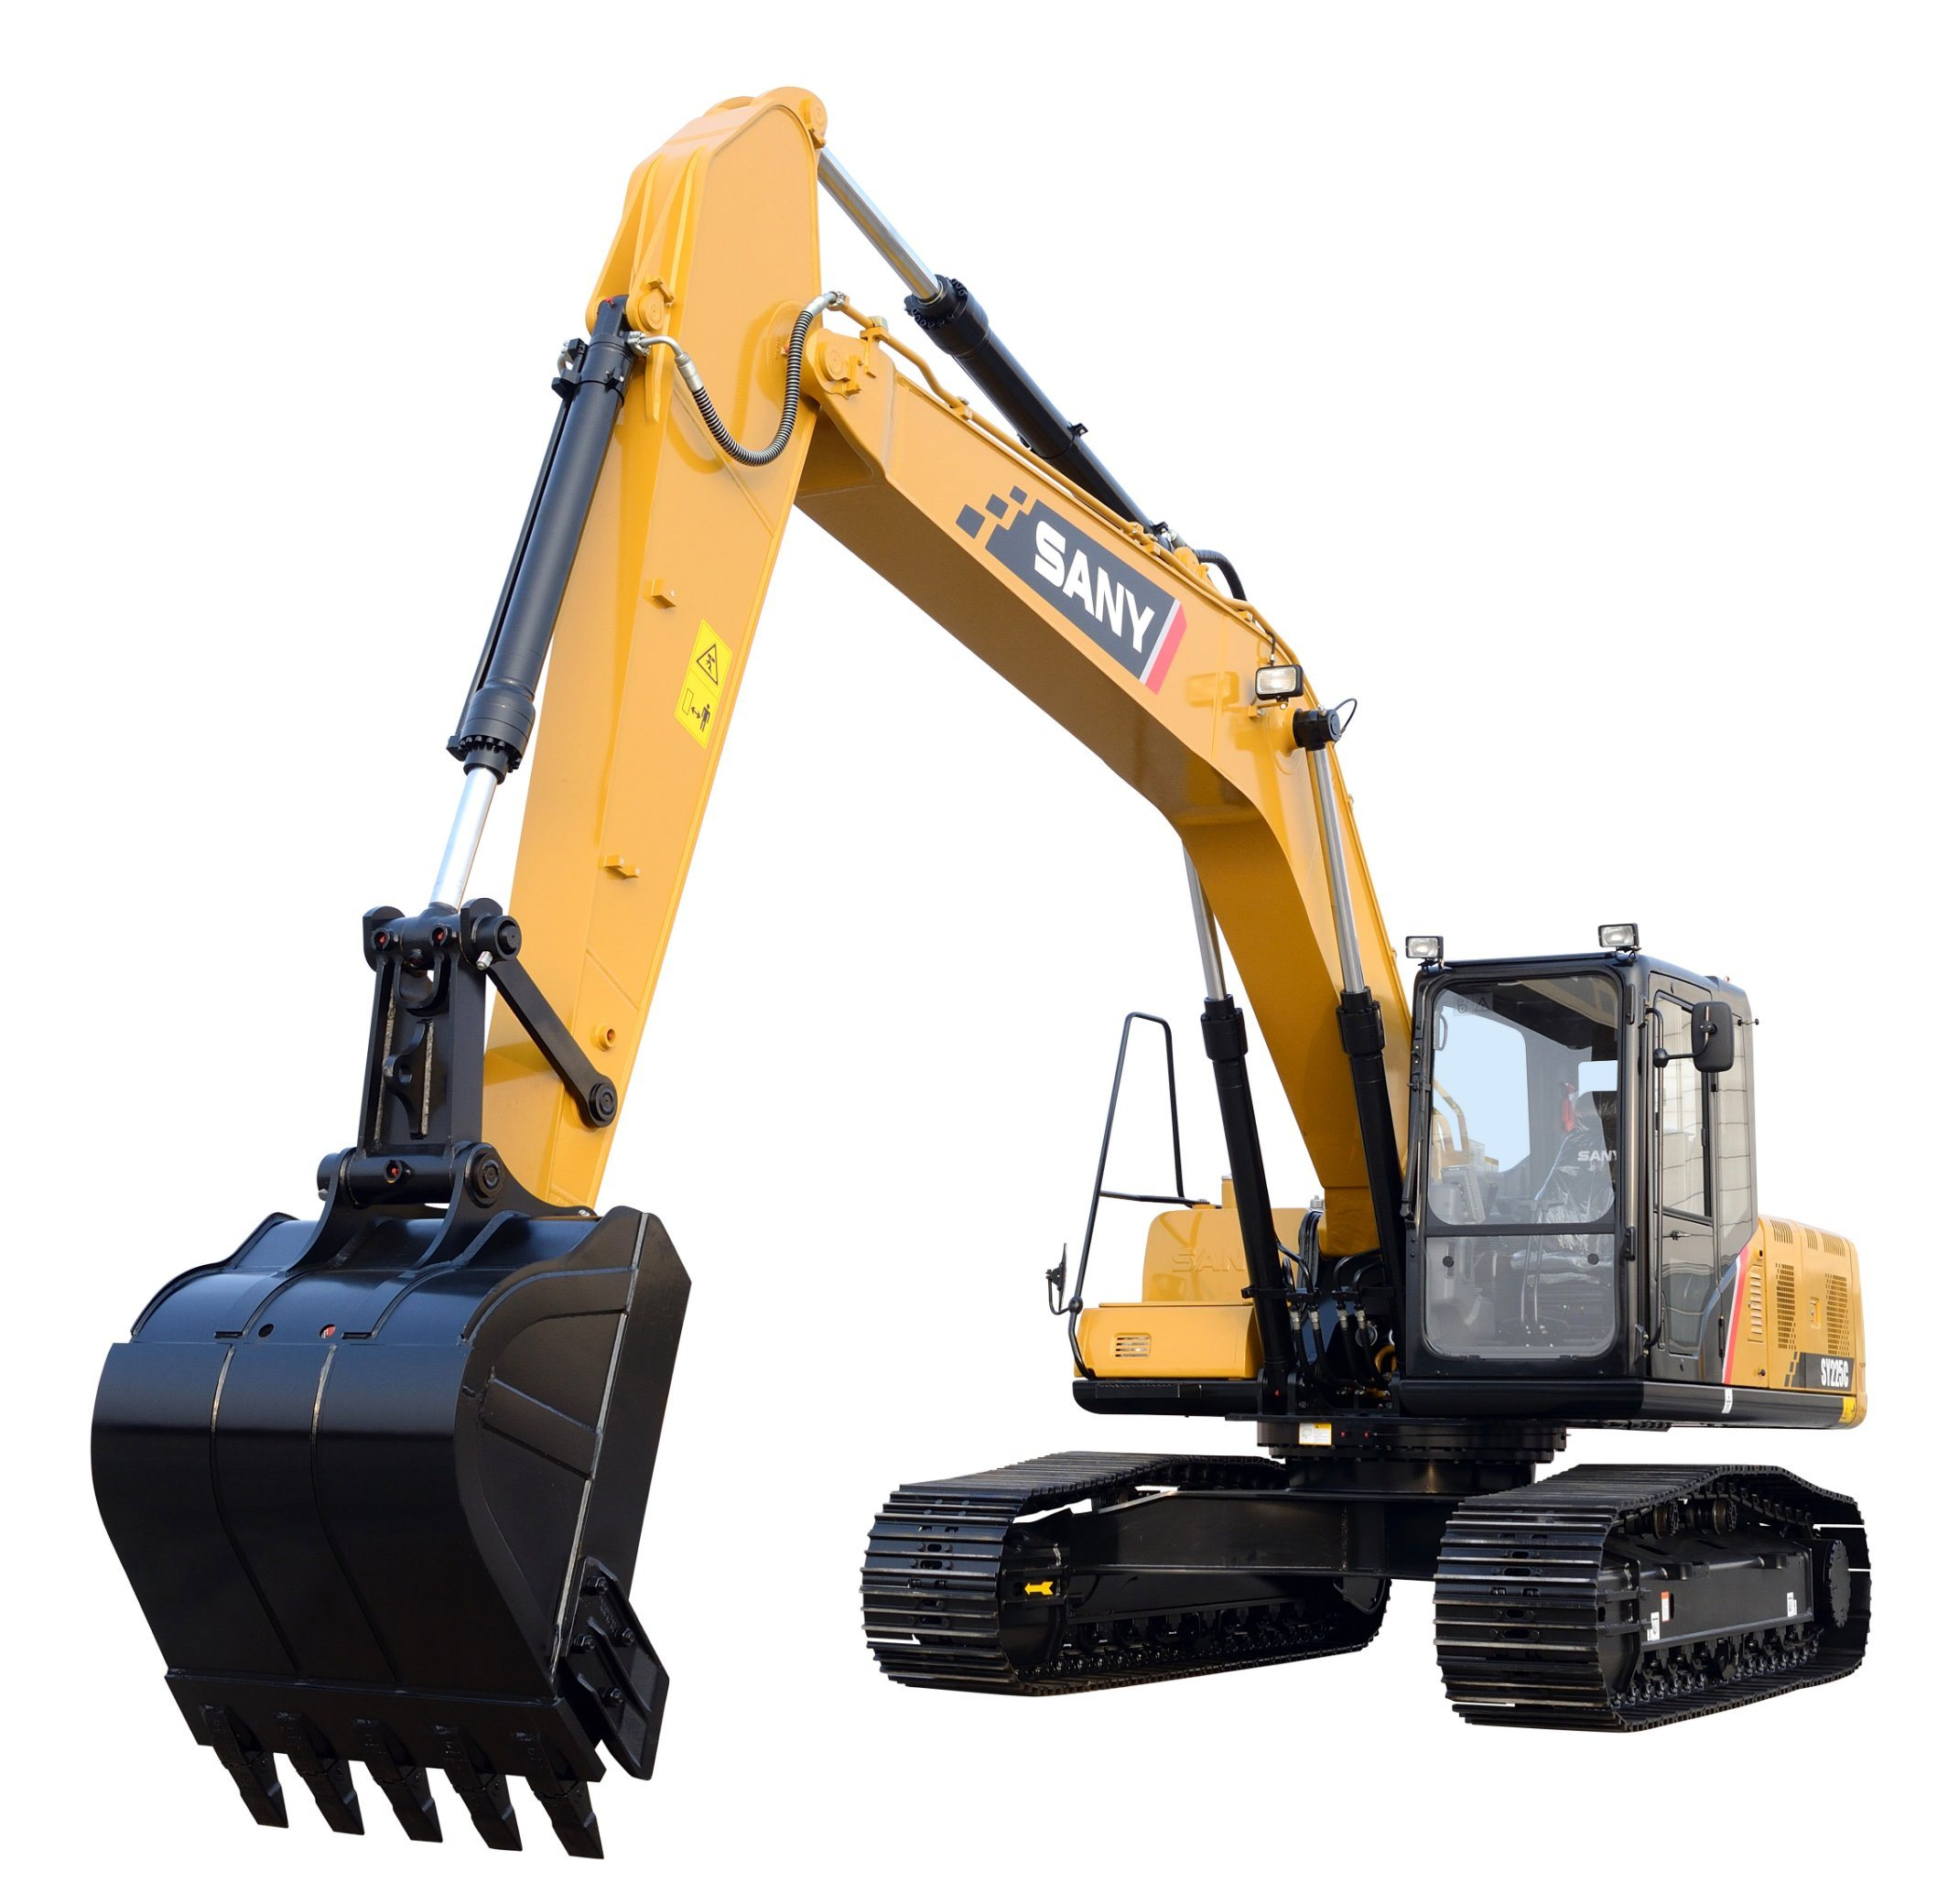 Sany Sy195c 20ton Digger Machine Excavator Specification